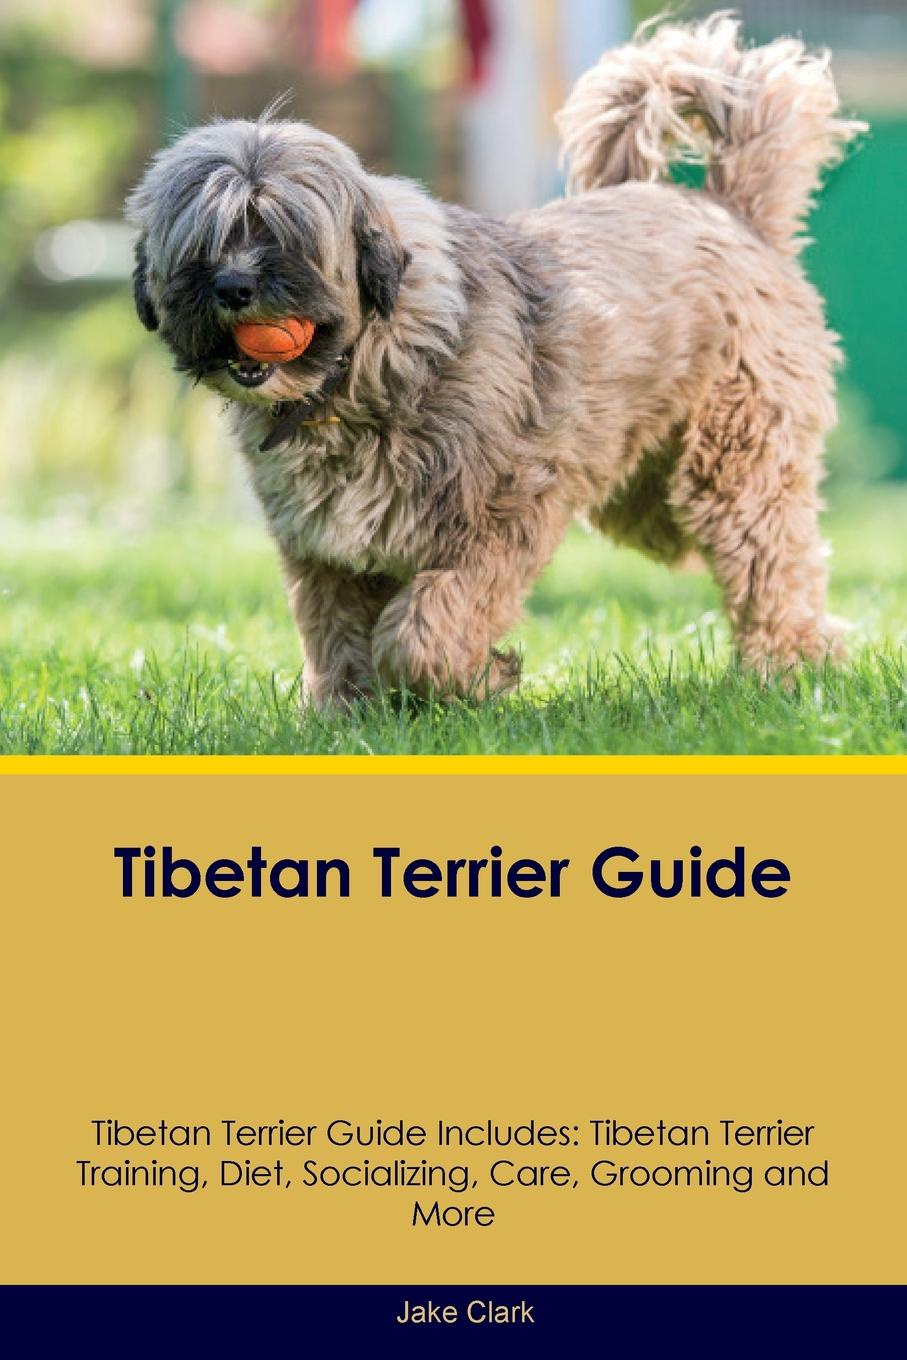 Jake Clark Tibetan Terrier Guide Includes. Training, Diet, Socializing, Care, Grooming, Breeding and More